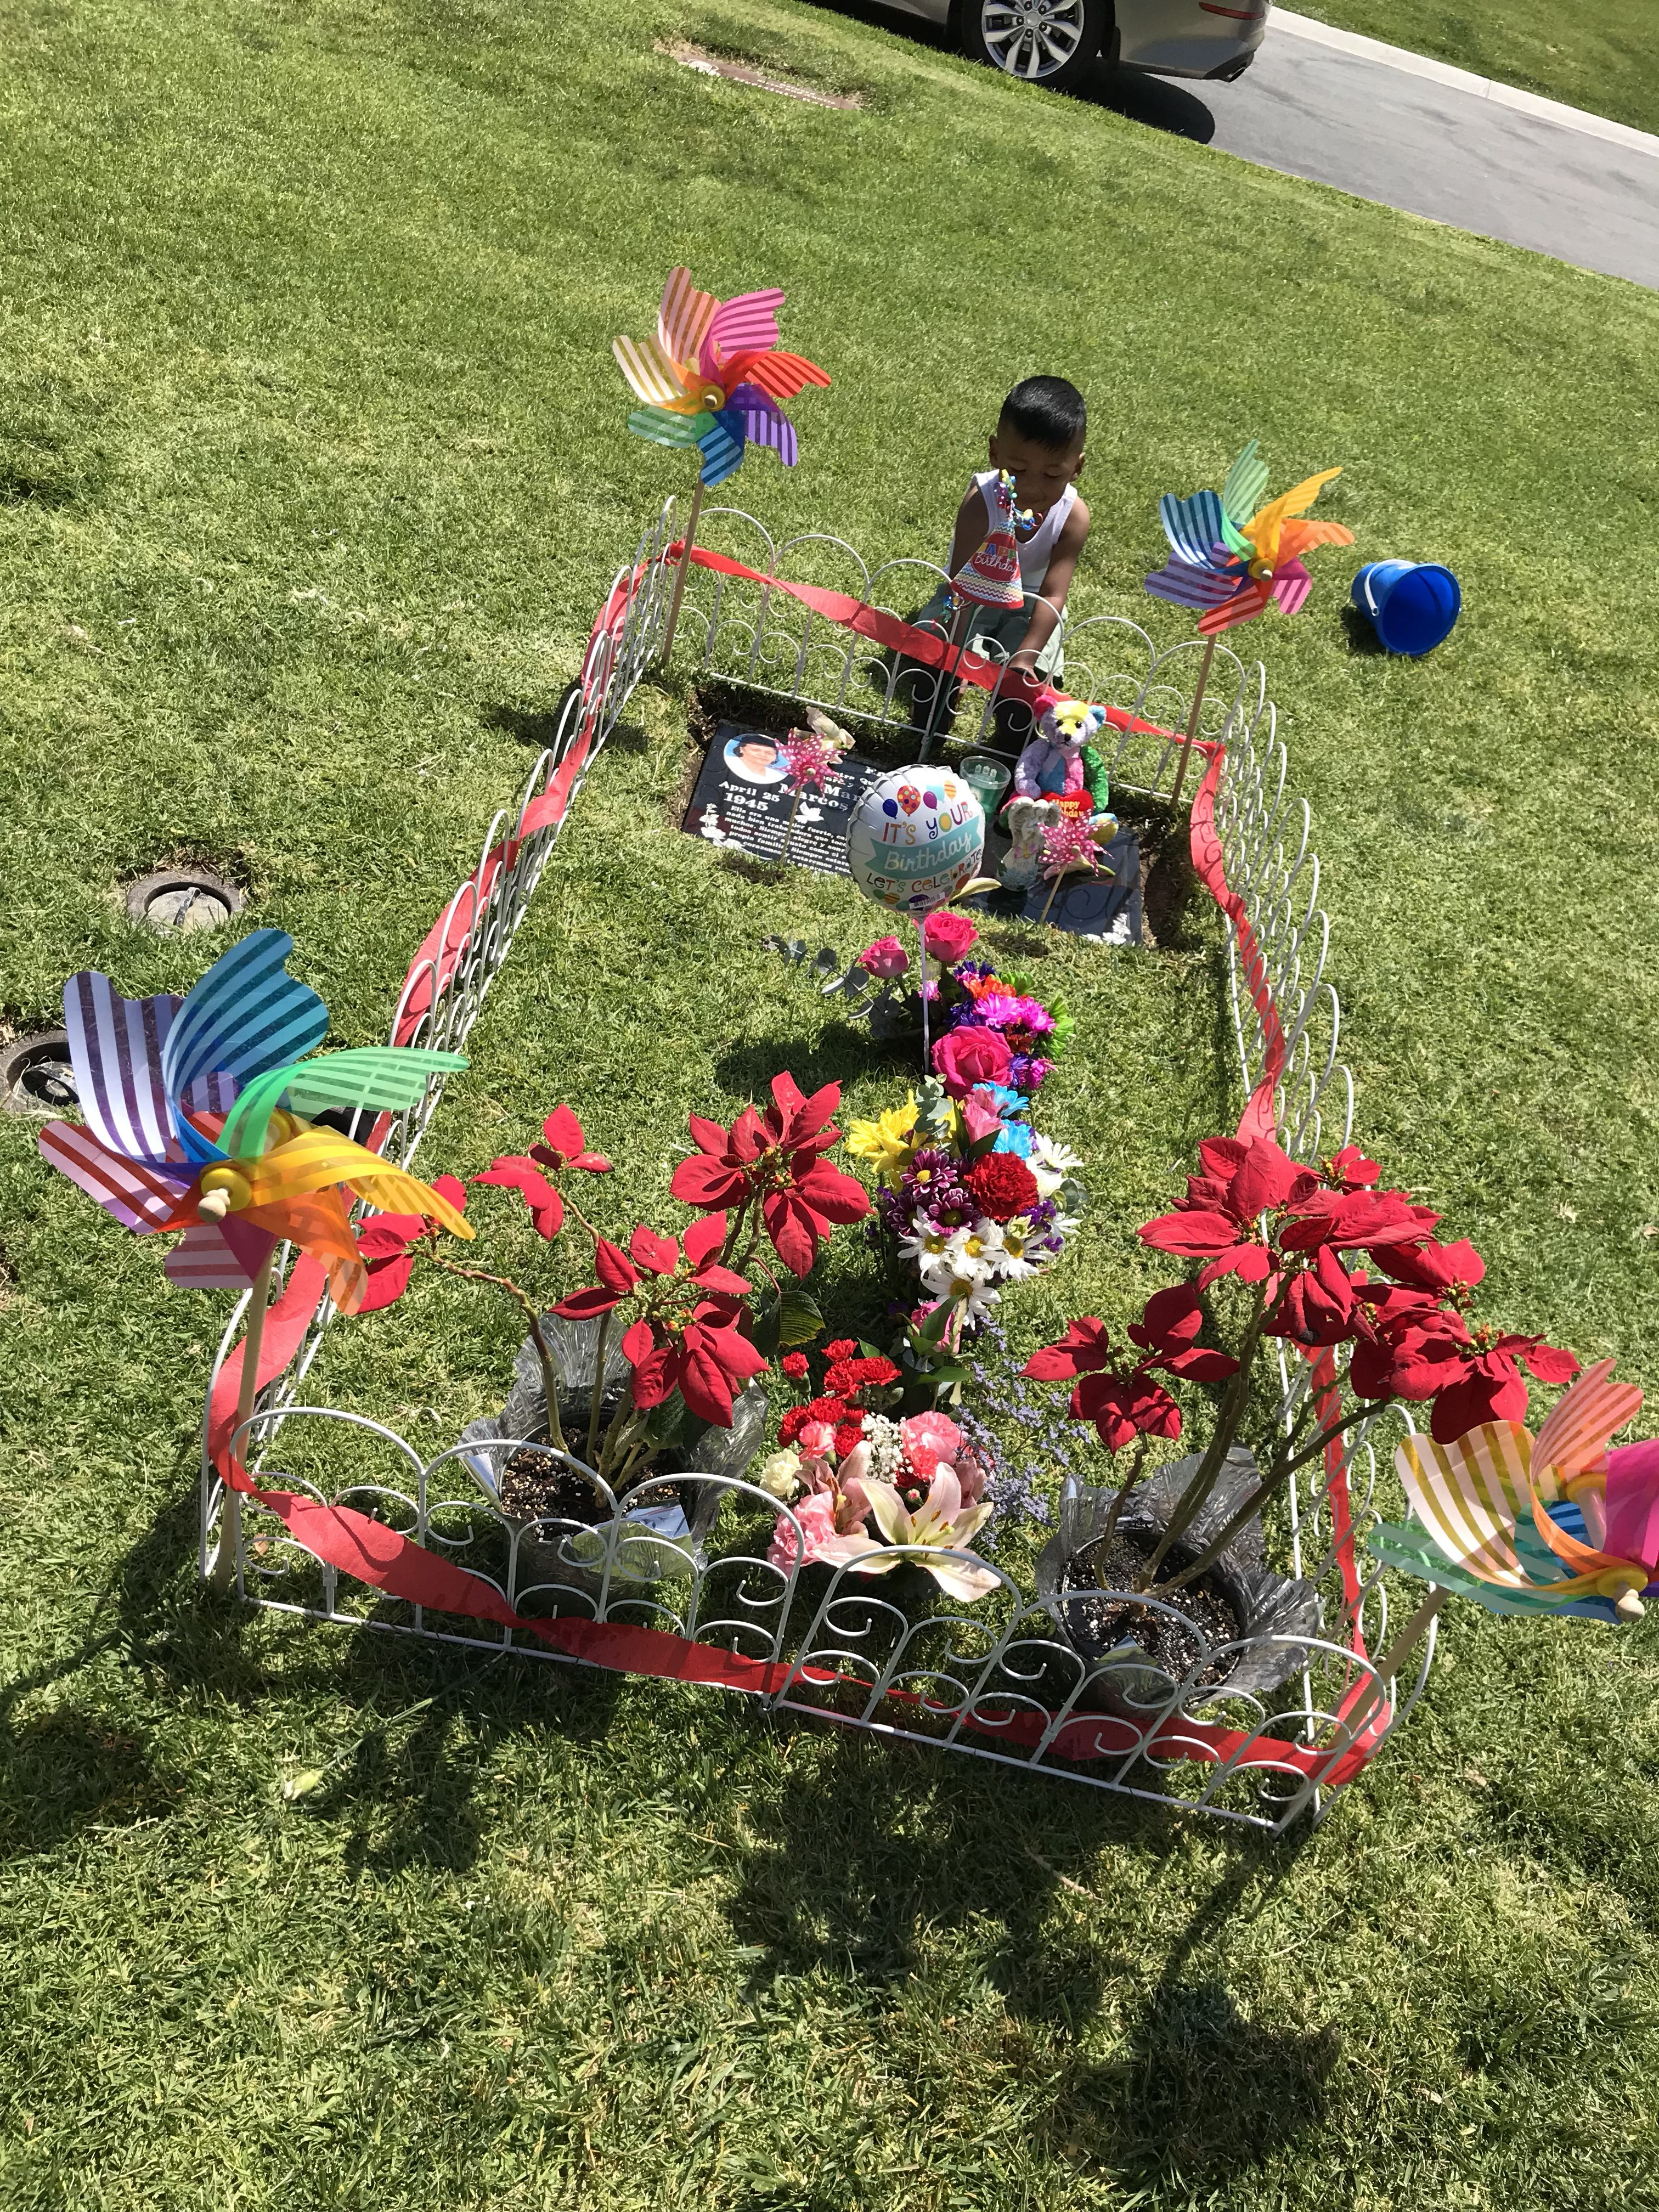 April 26, 2018 Cemetery decorations, Christmas ornaments